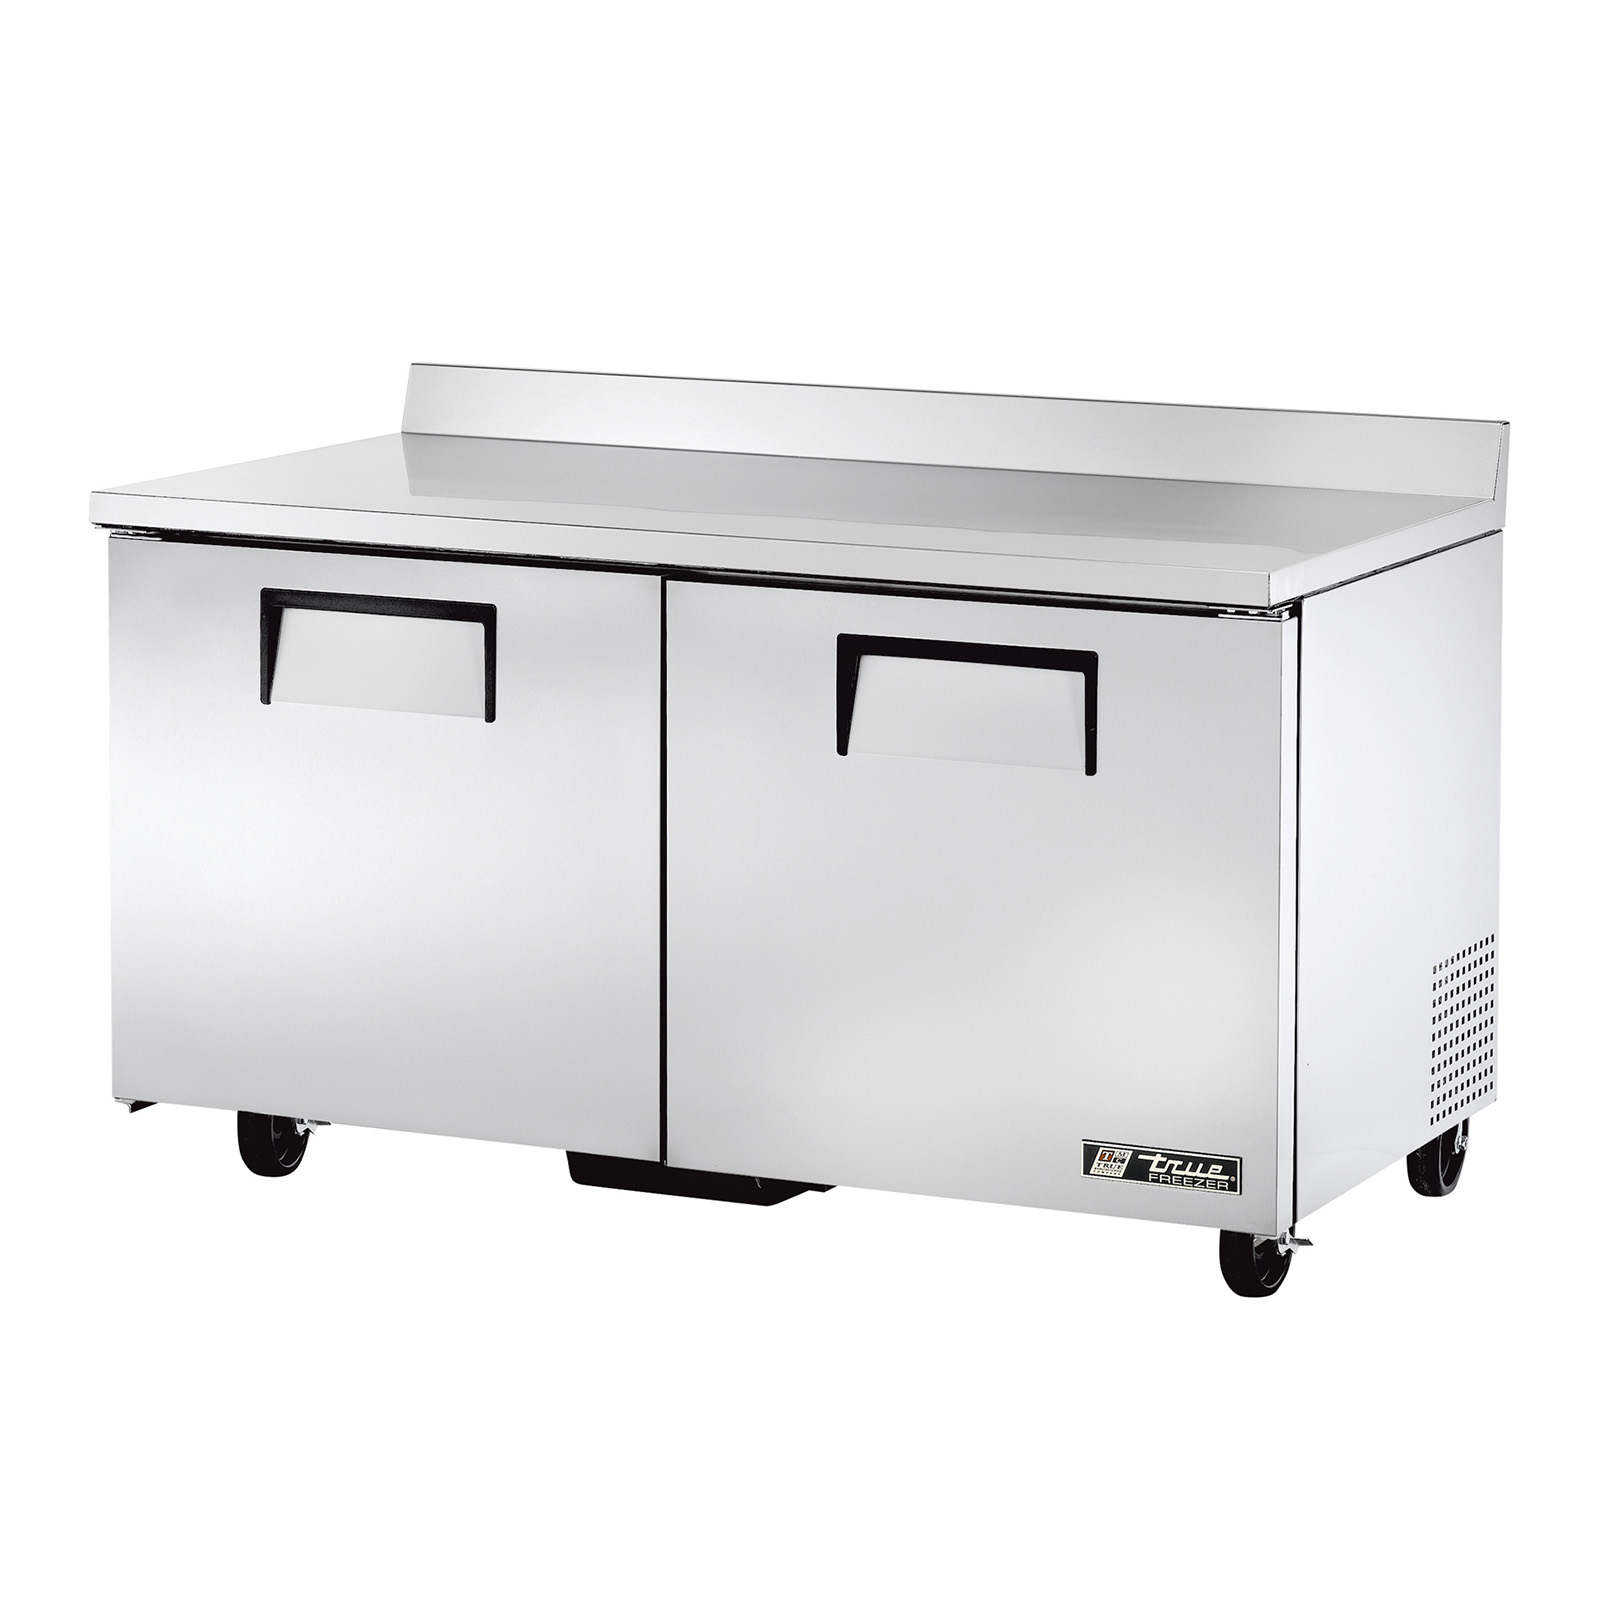 TWT-60F True - Work Top Freezer two-section